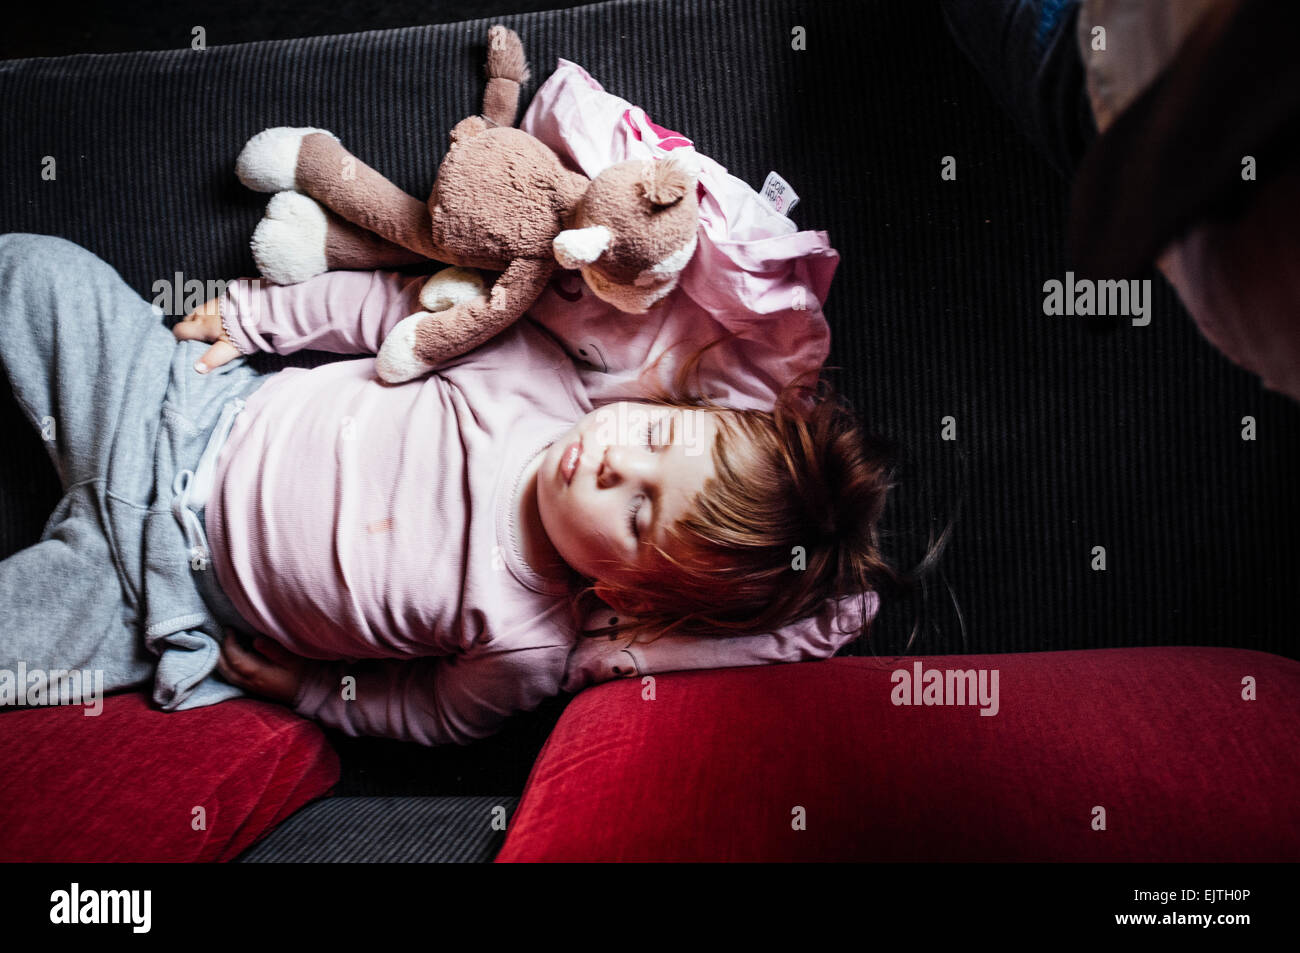 High angle view of baby sleeping in train - Stock Image